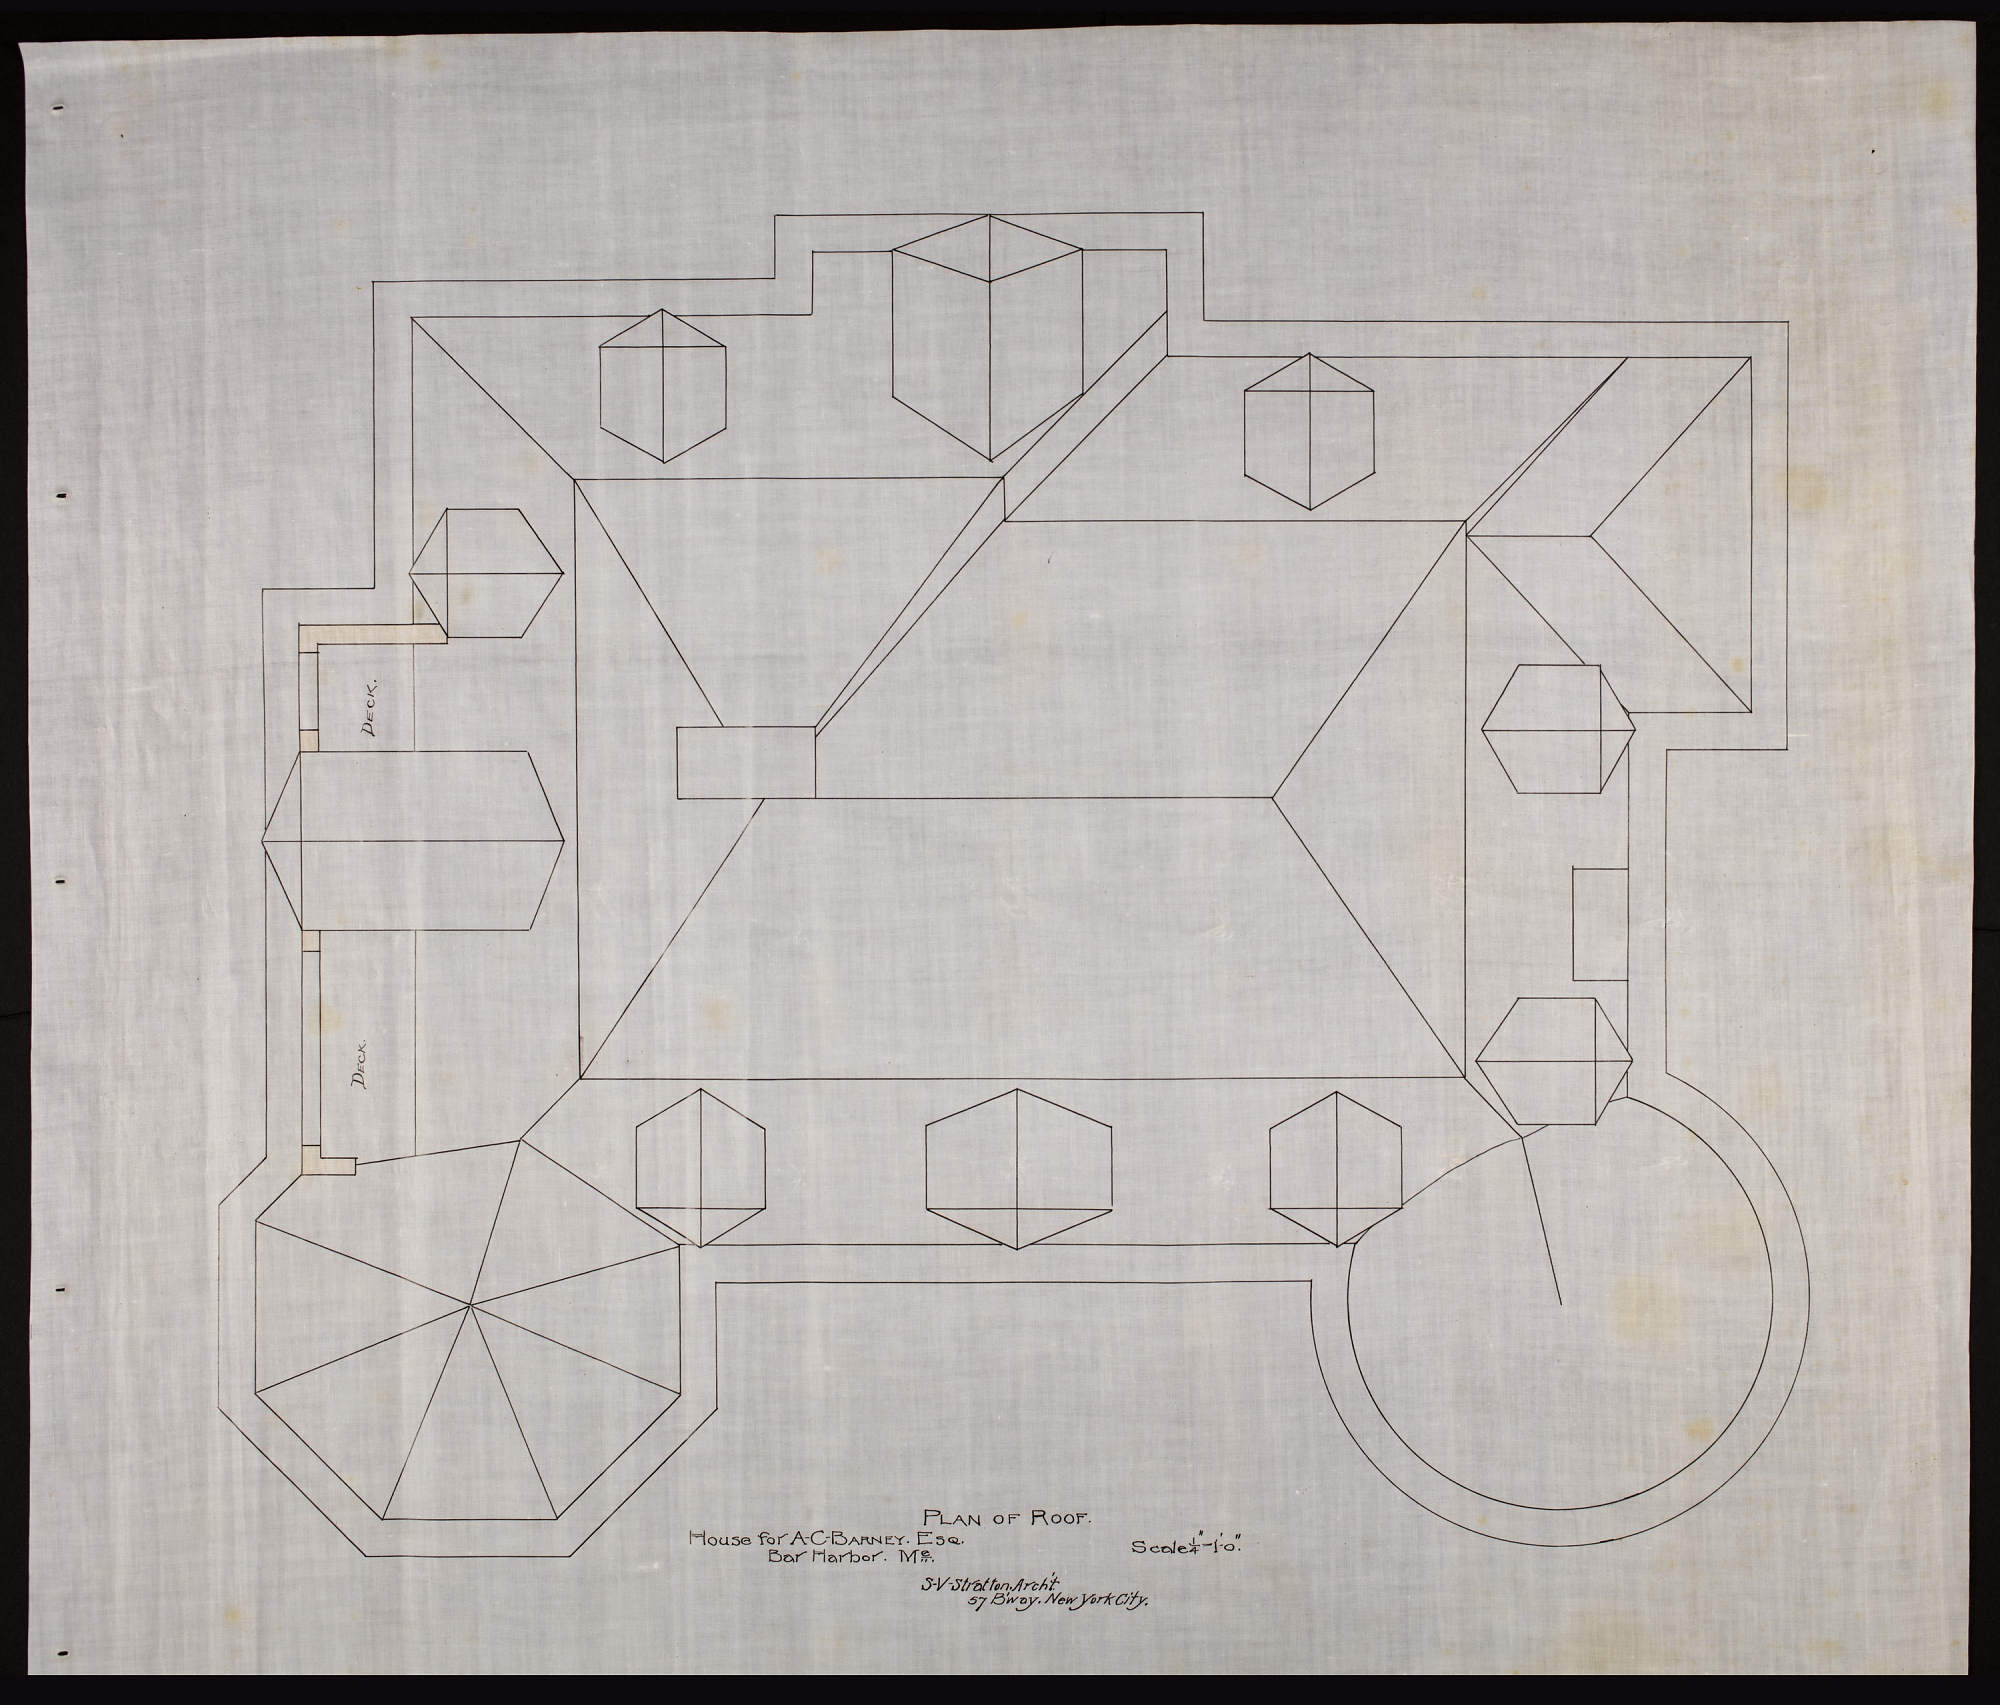 Plan showing architectural features of roof. Plan signed by Stratton Architect in New York City.